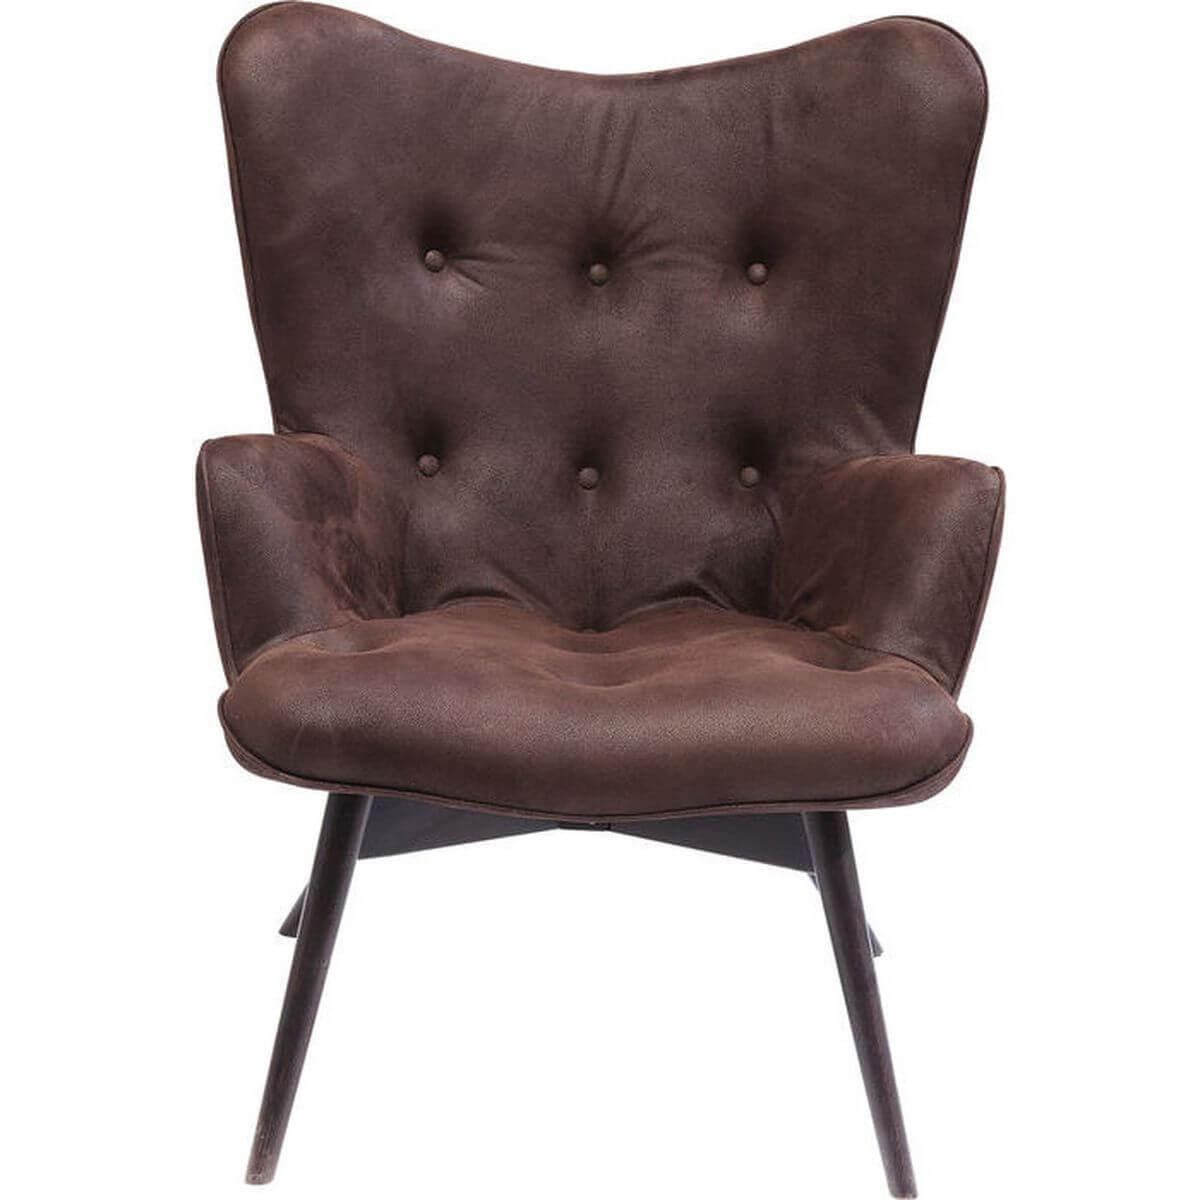 ANGELS WINGS ECO by Kare Fauteuil brun foncé